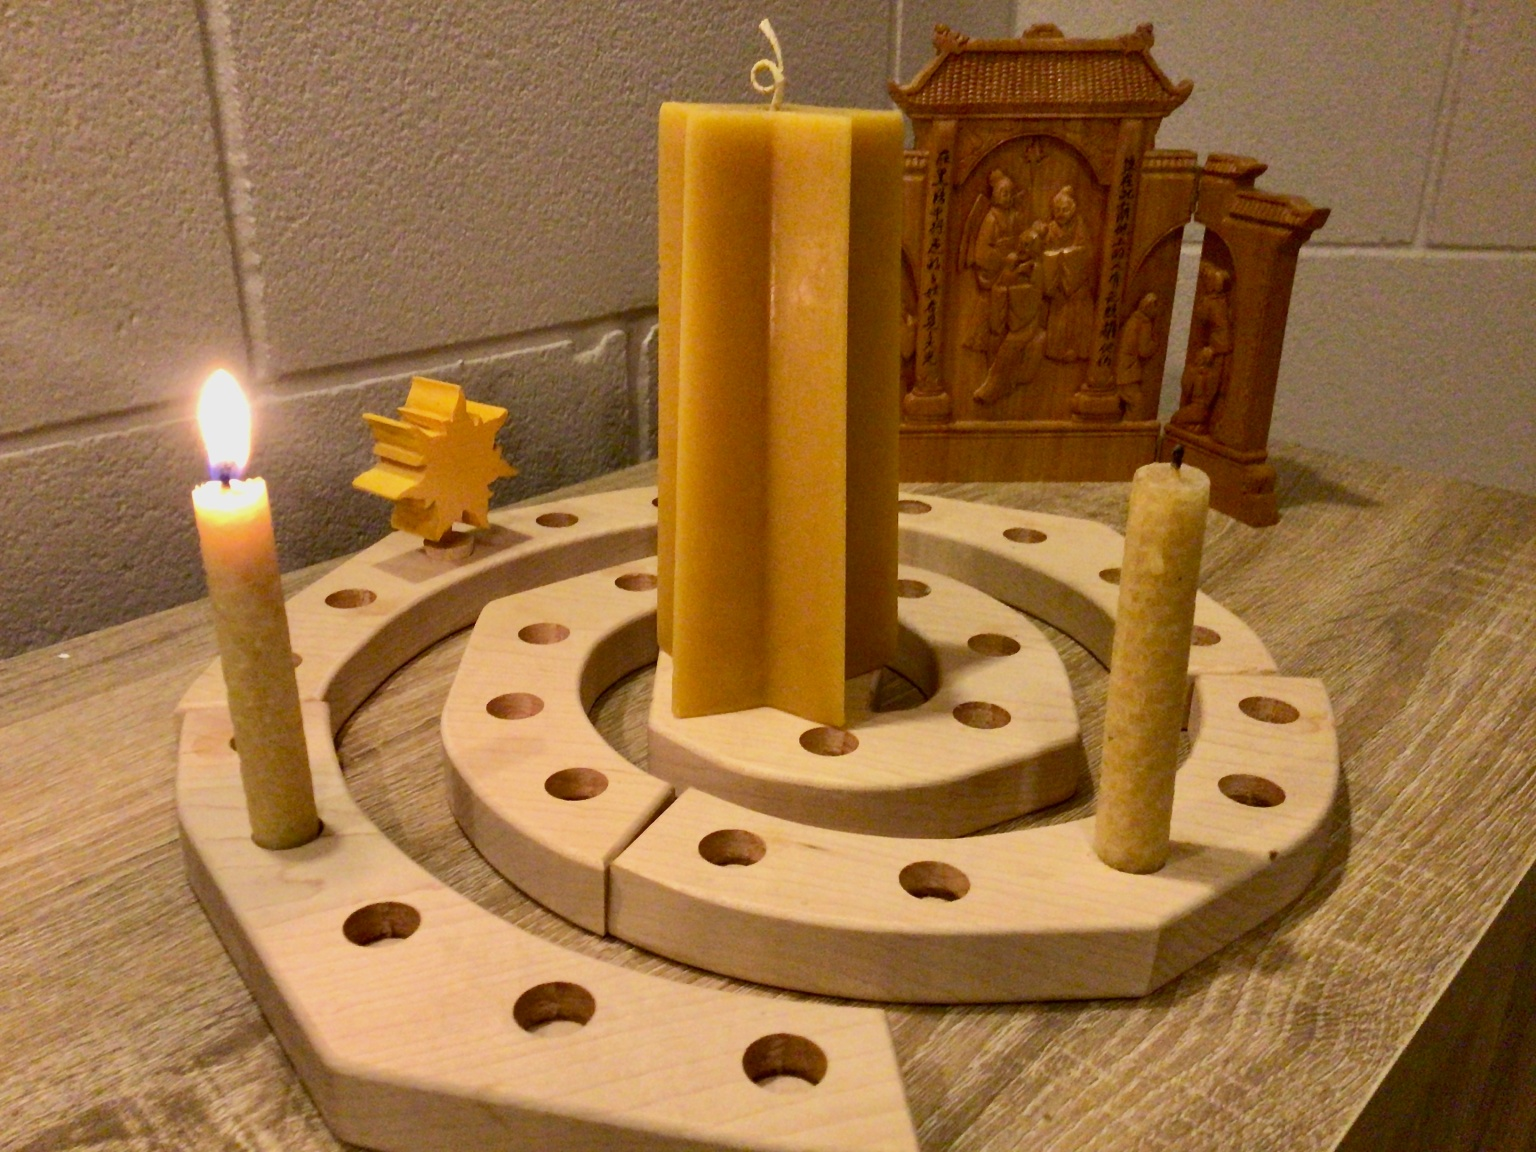 Lit candle in a wooden Advent spiral, with wooden sun peg several slots ahead to mark the passing of the week.